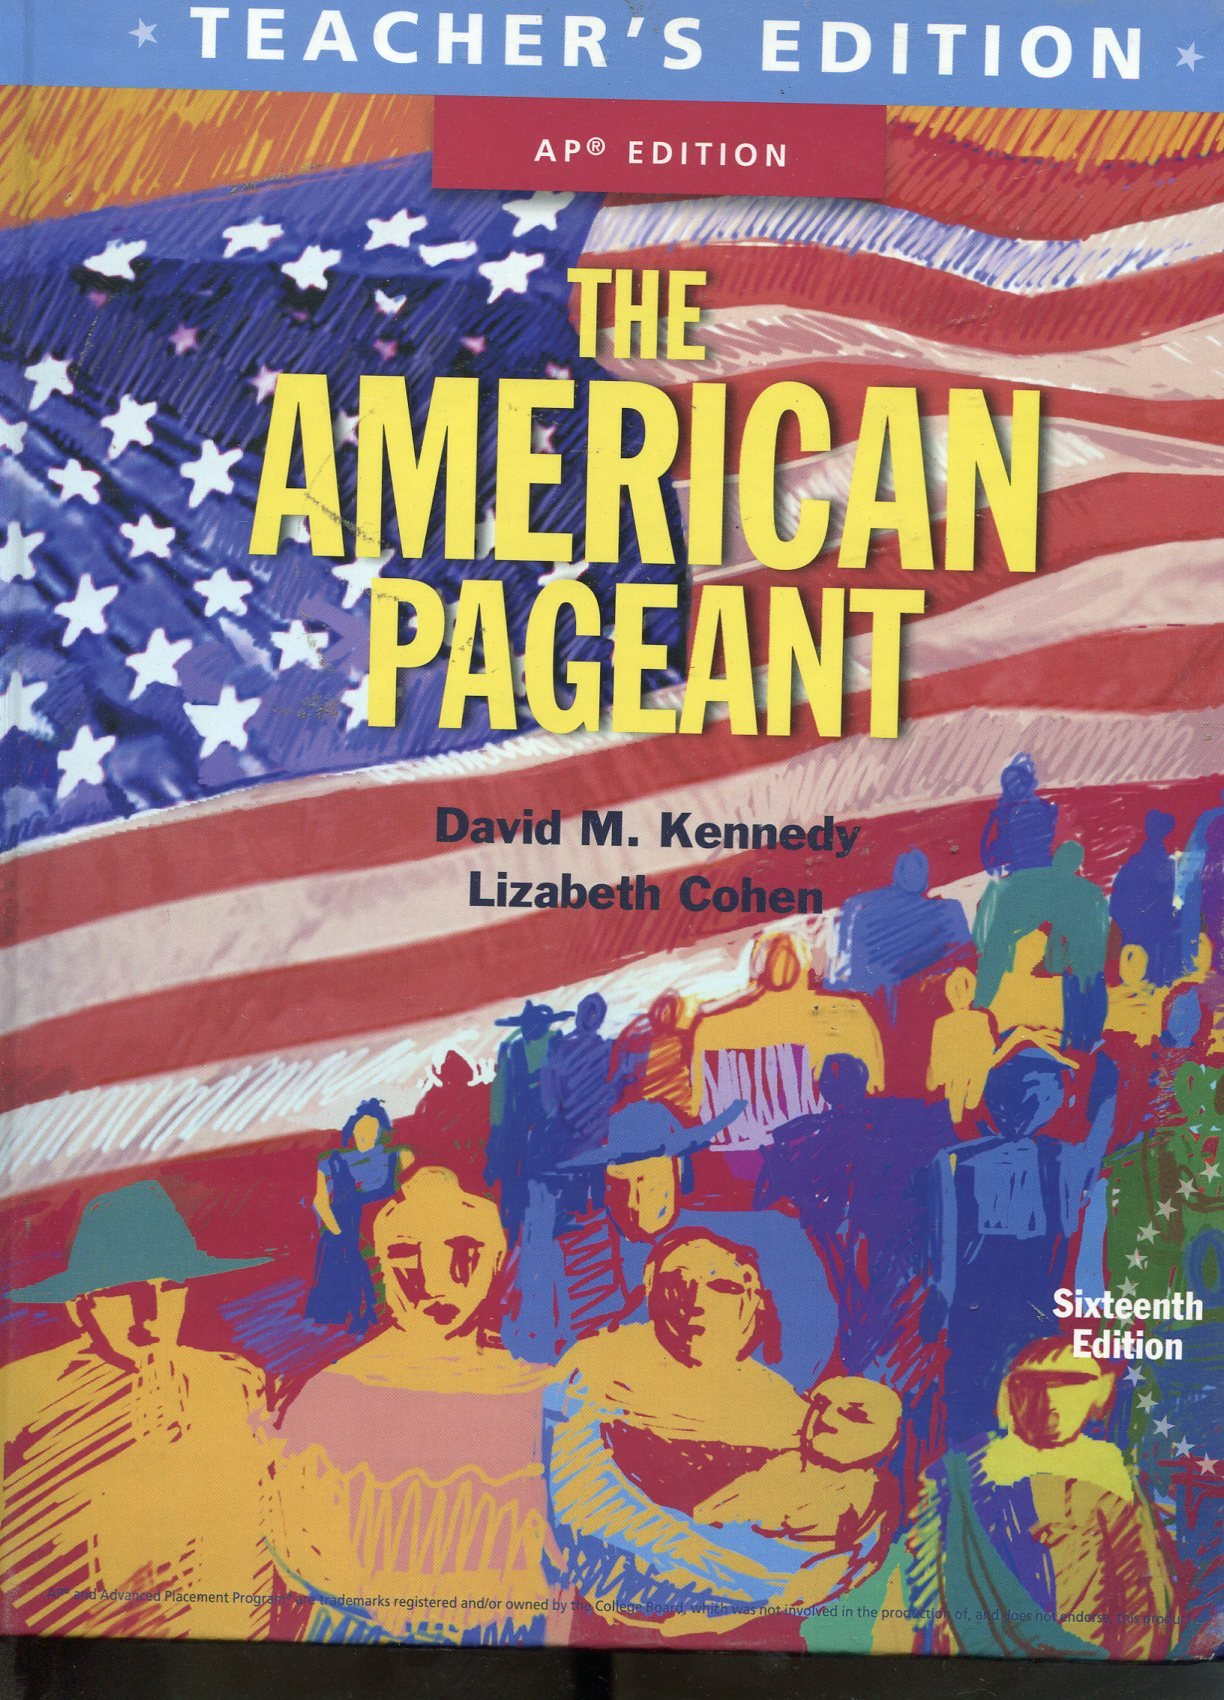 The American Pageant 16th Edition - AP Edition - Teacher's